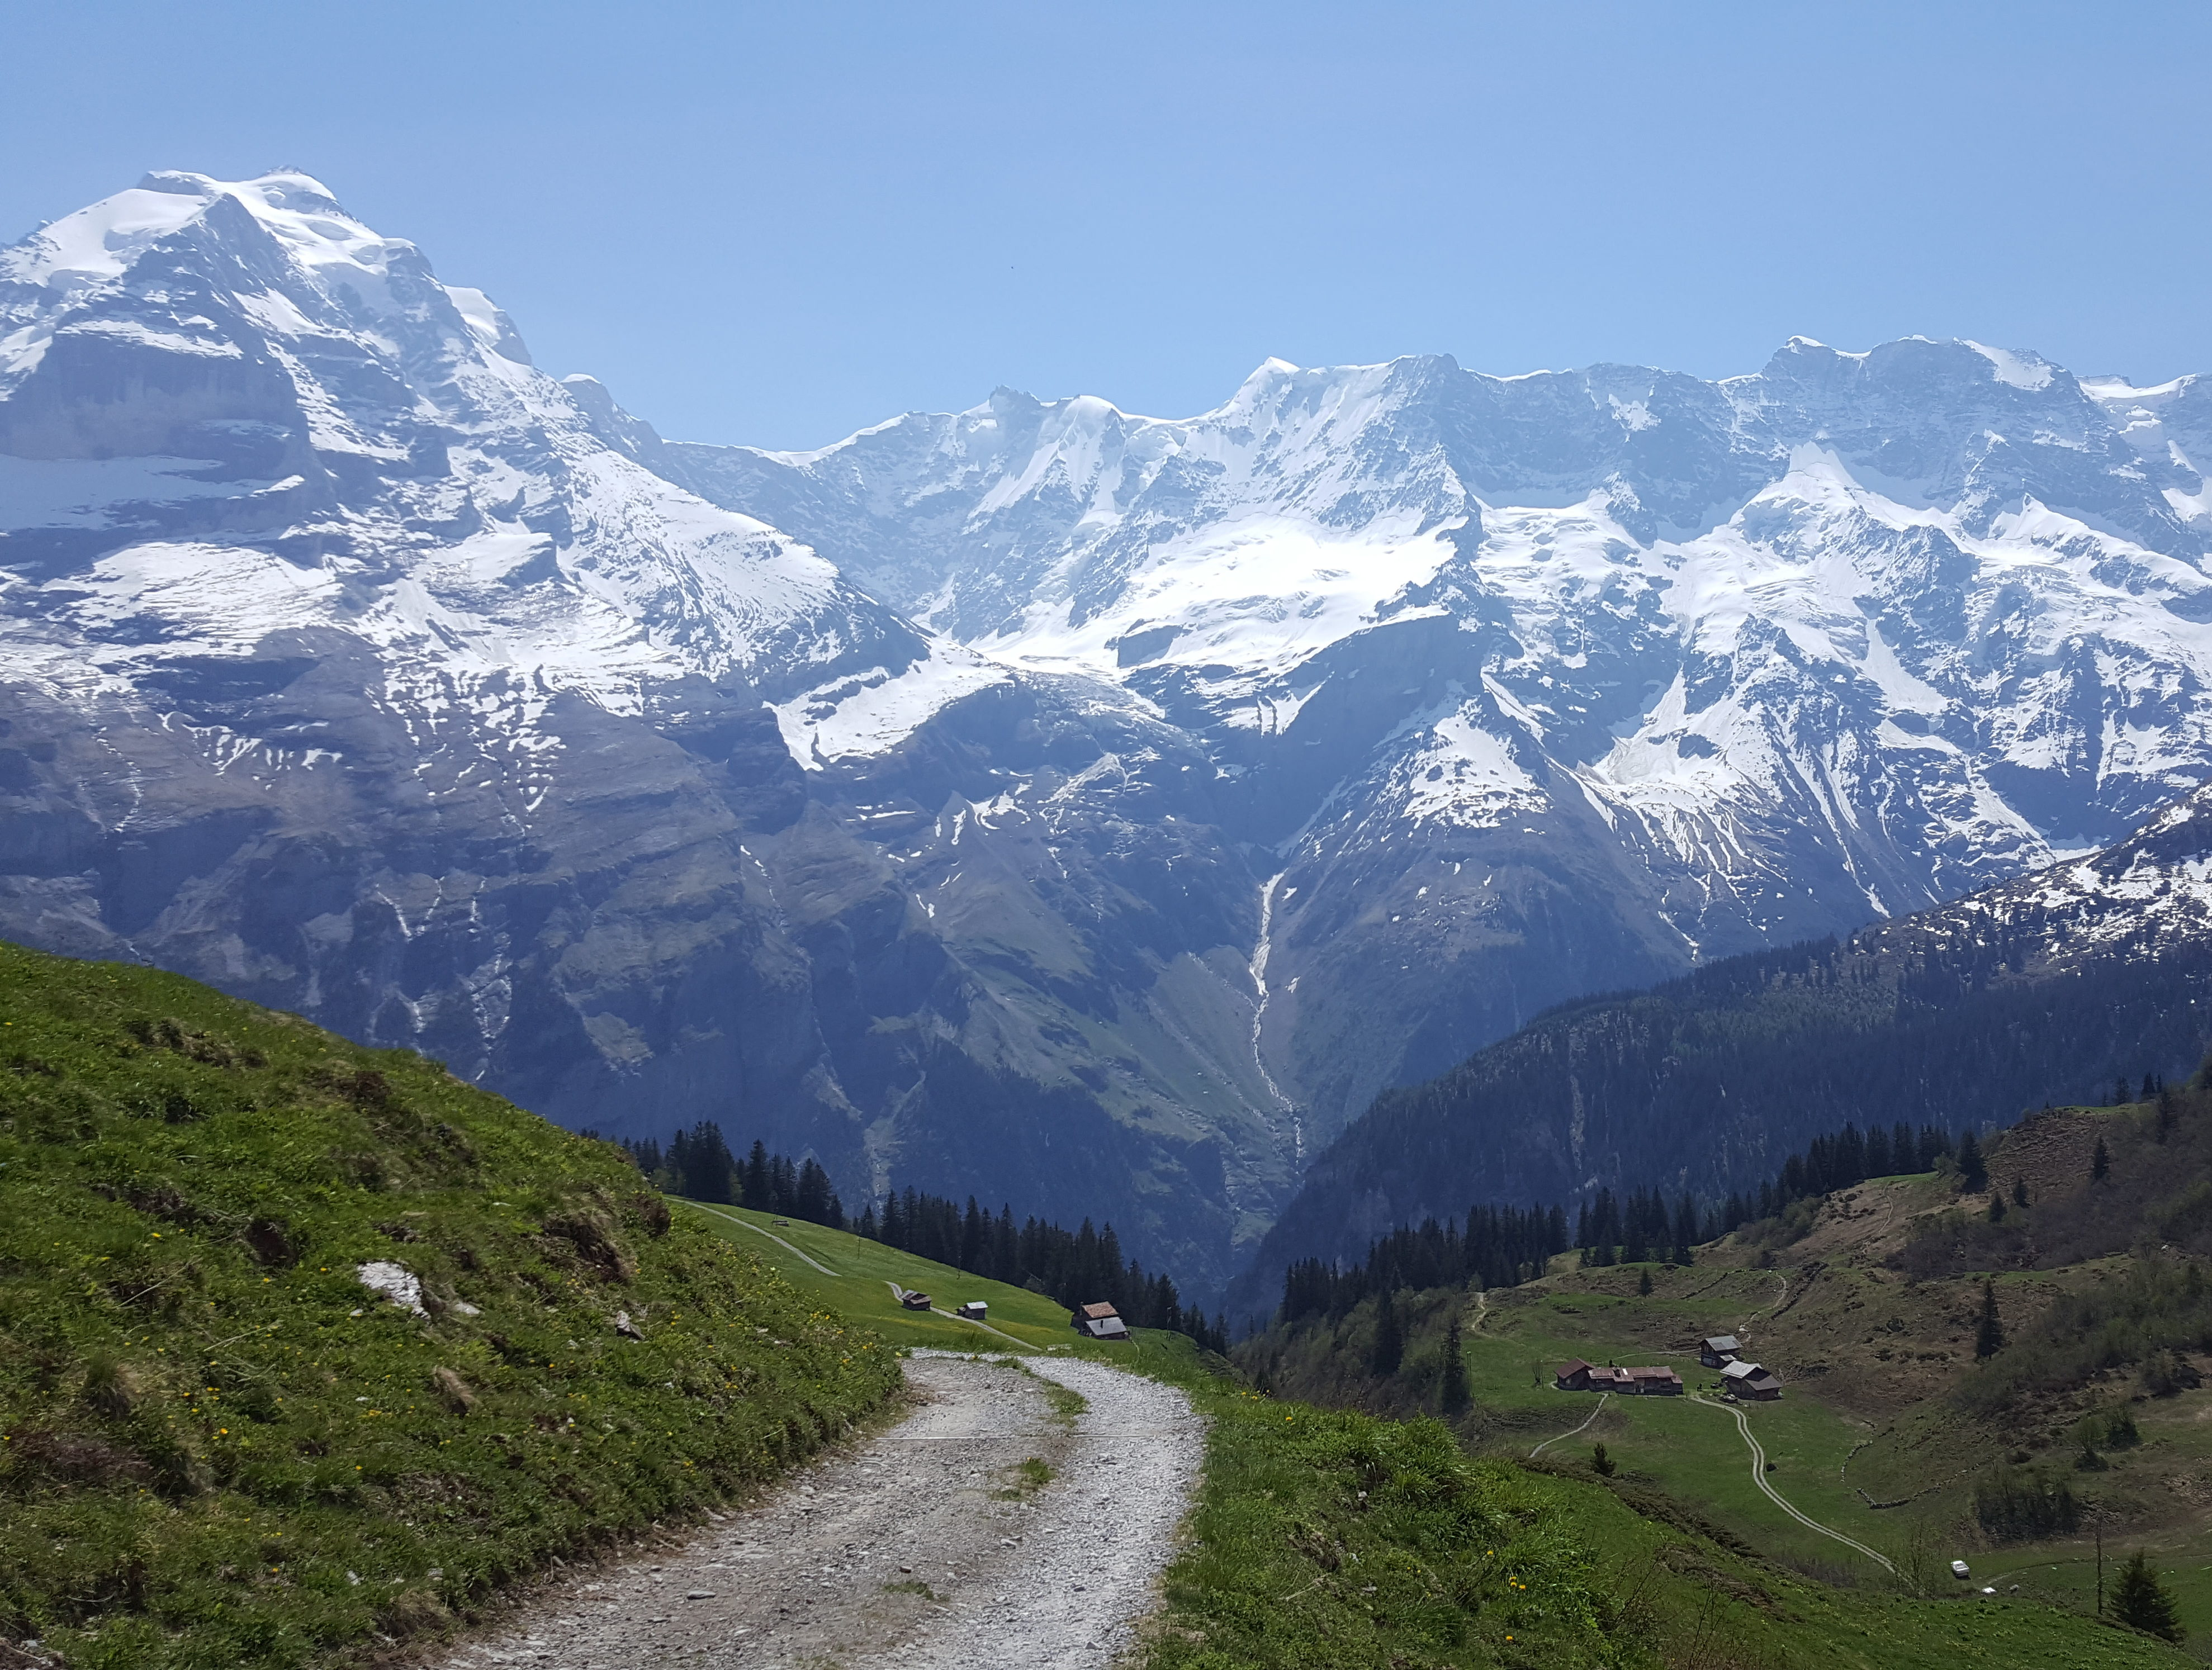 A hike along the North Face Trail in Murren, Switzerland took Meagan's breath away.